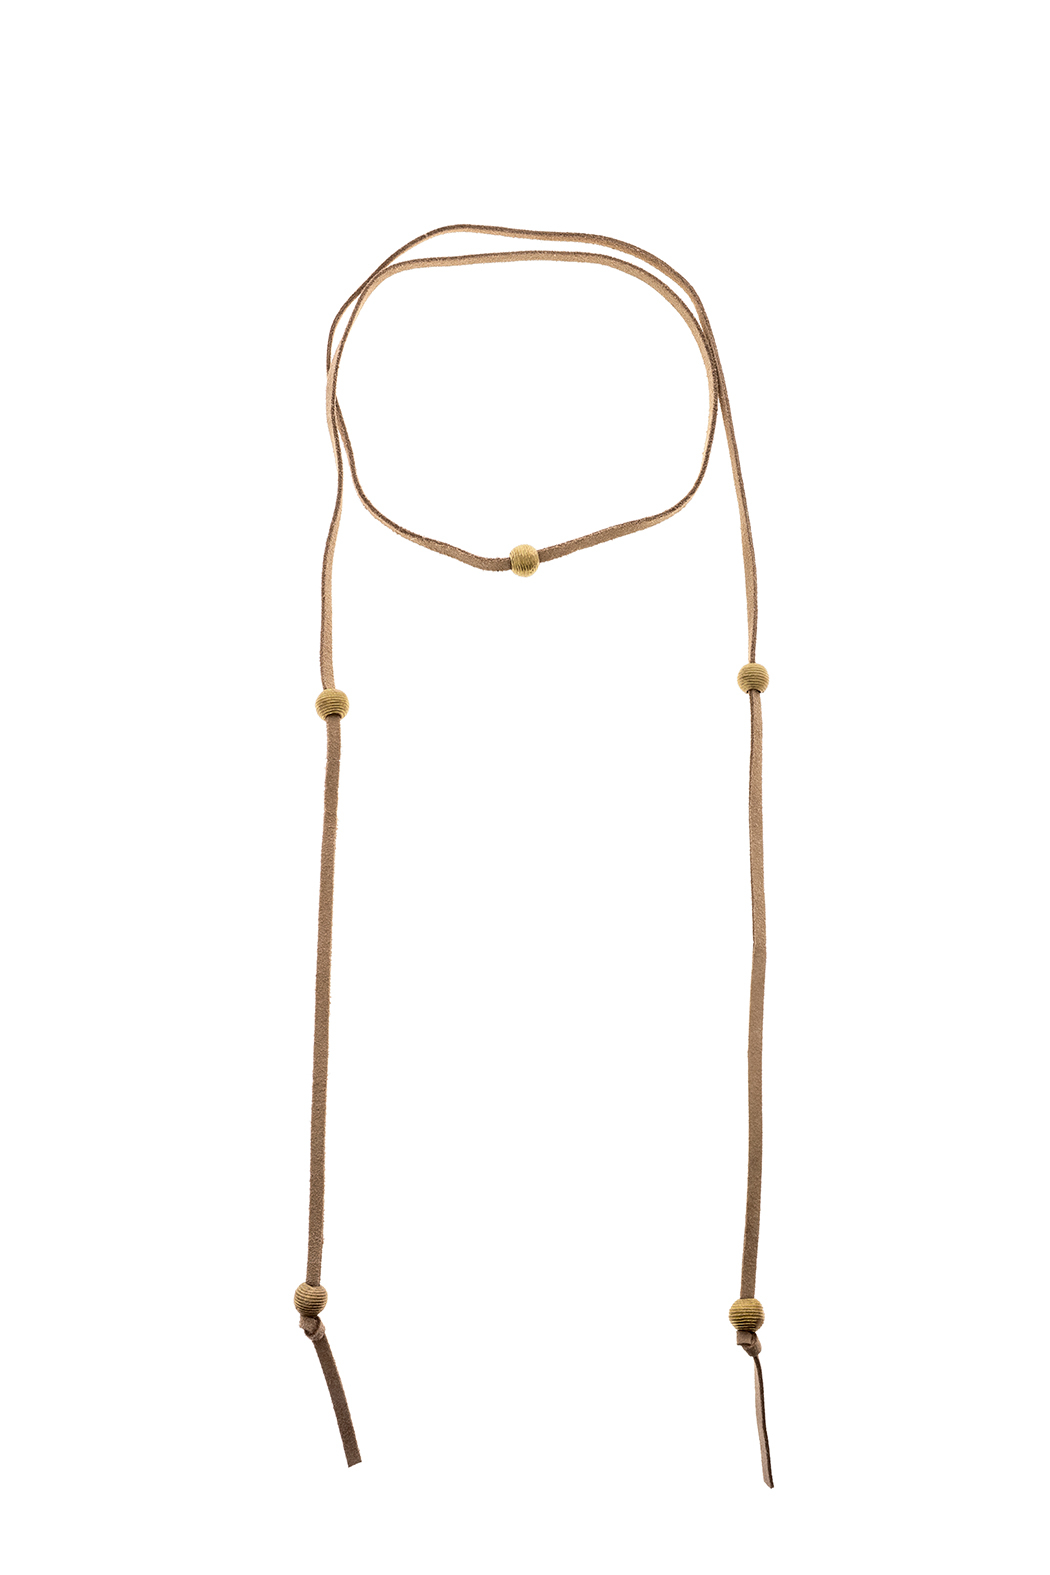 Mary Garrett Tan Leather Wrap Necklace - Main Image